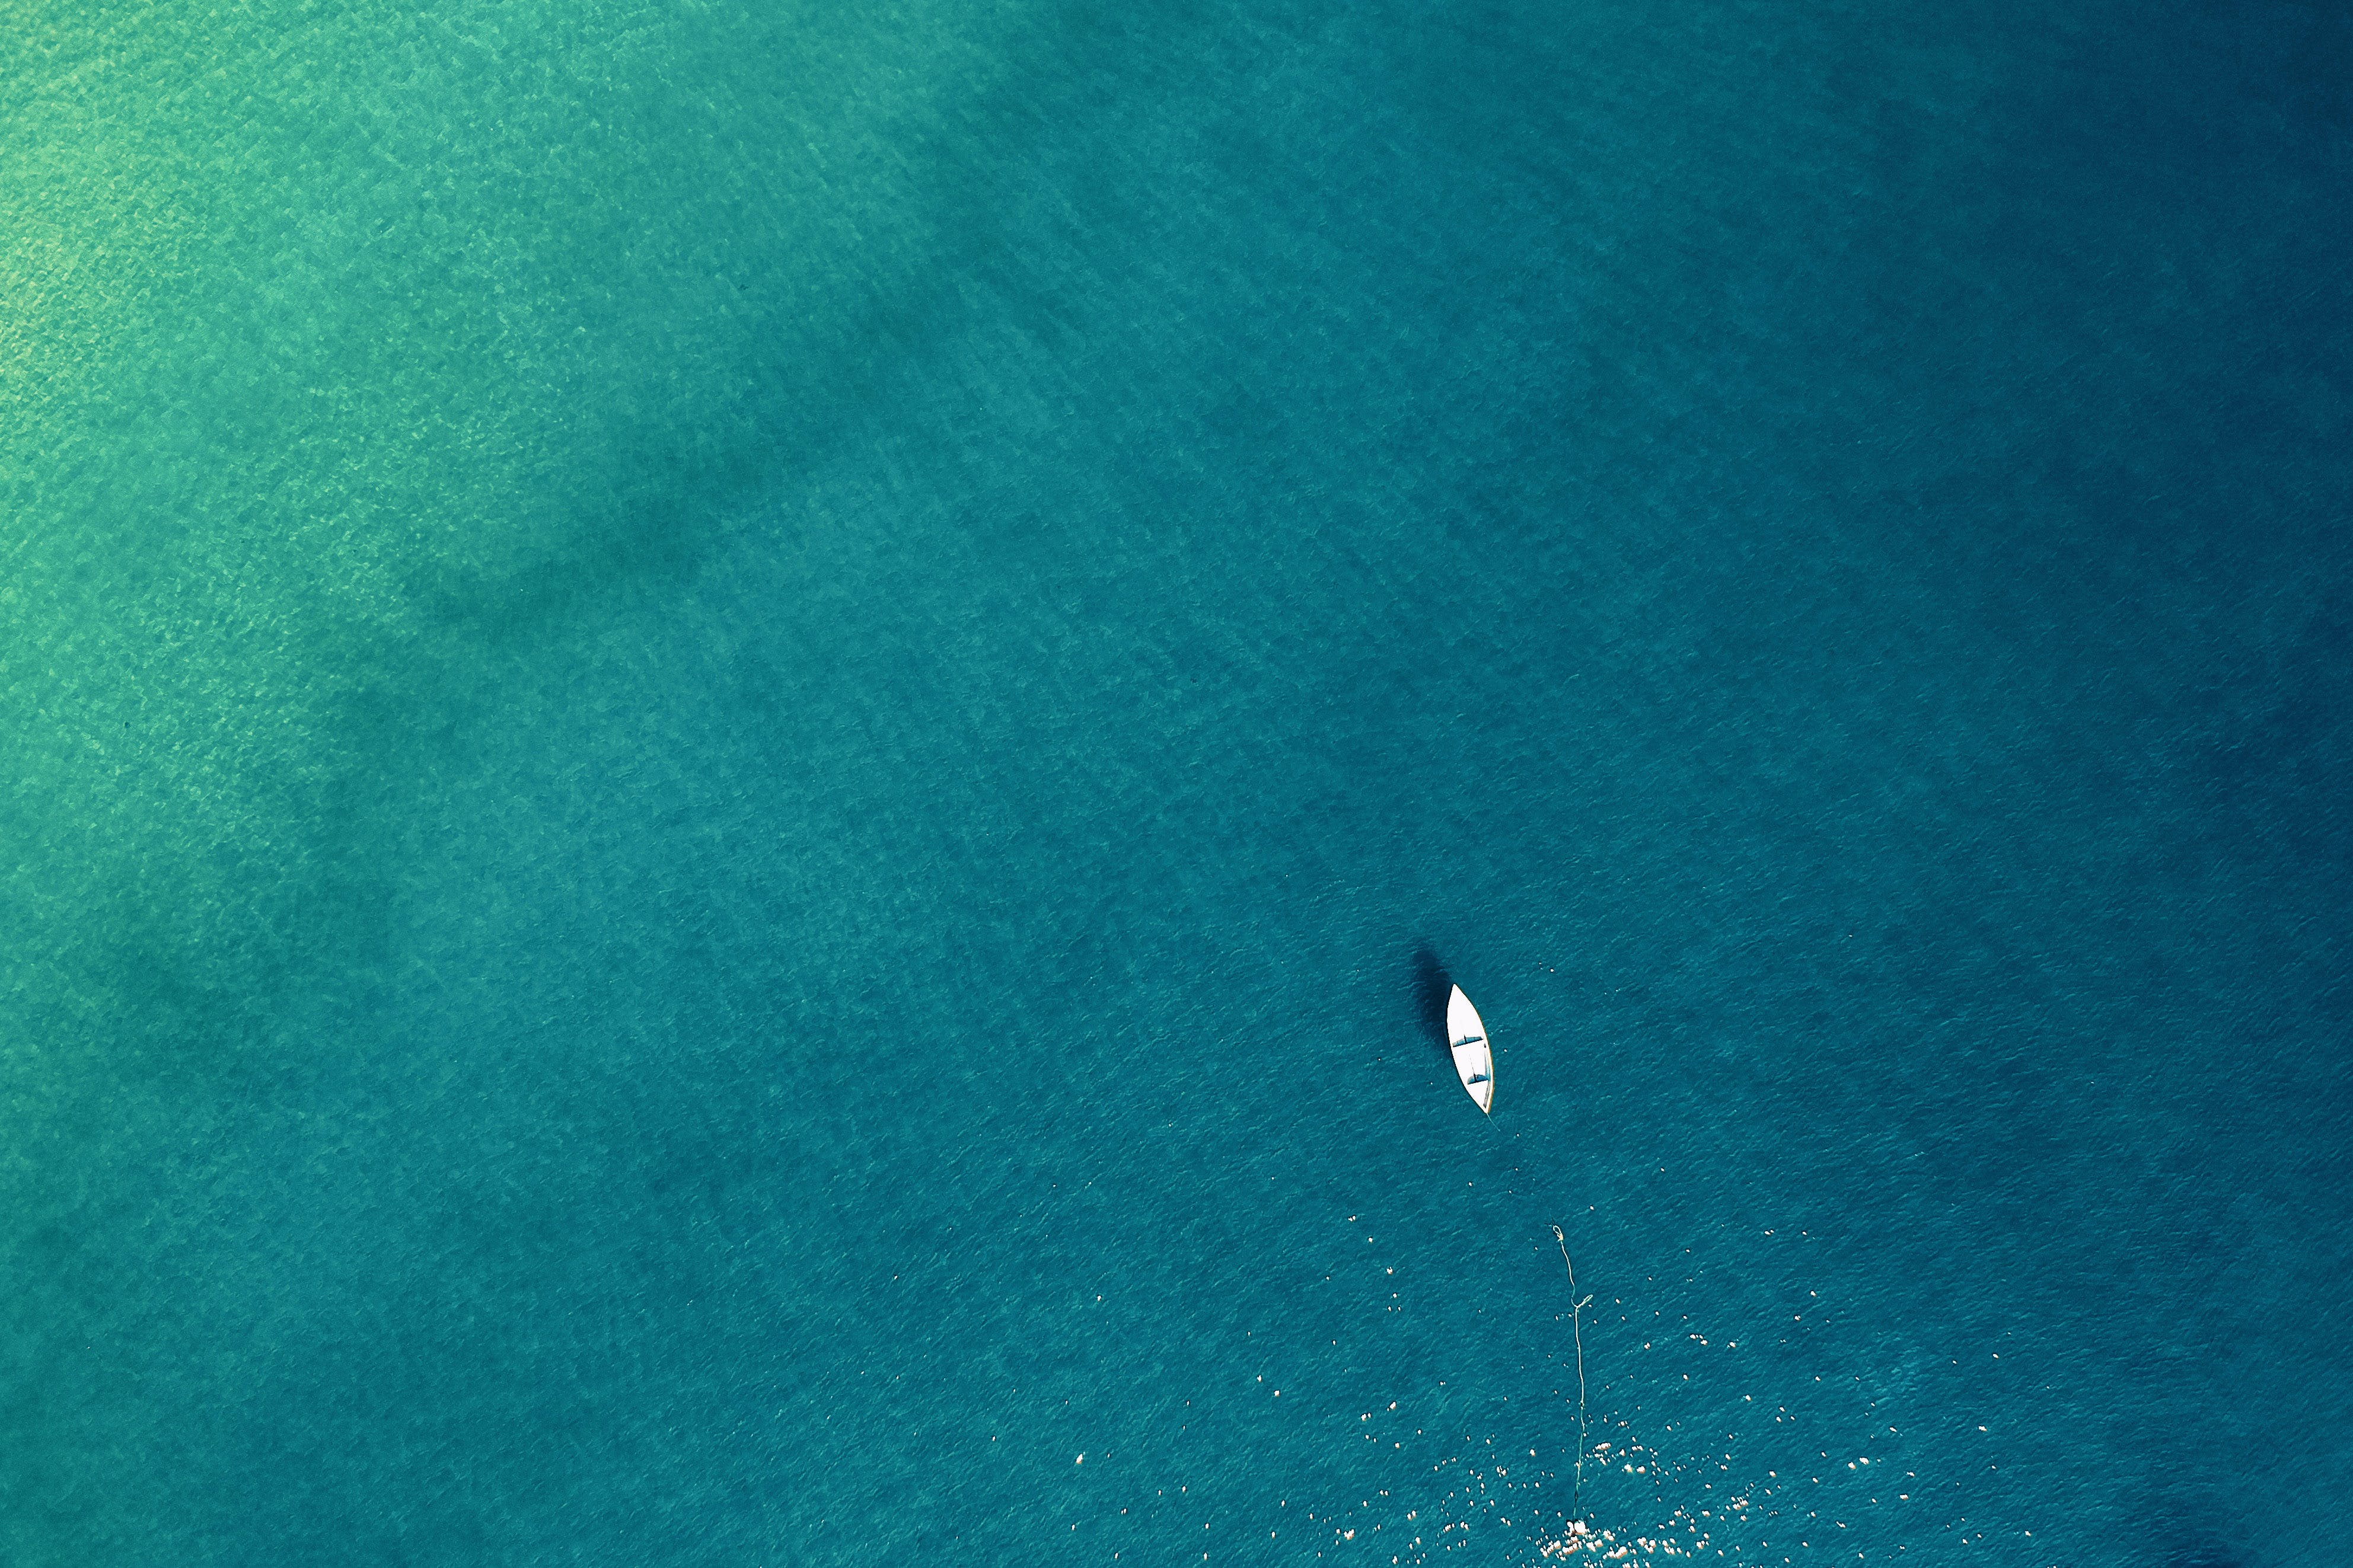 Aerial Photo of Boat on Sea